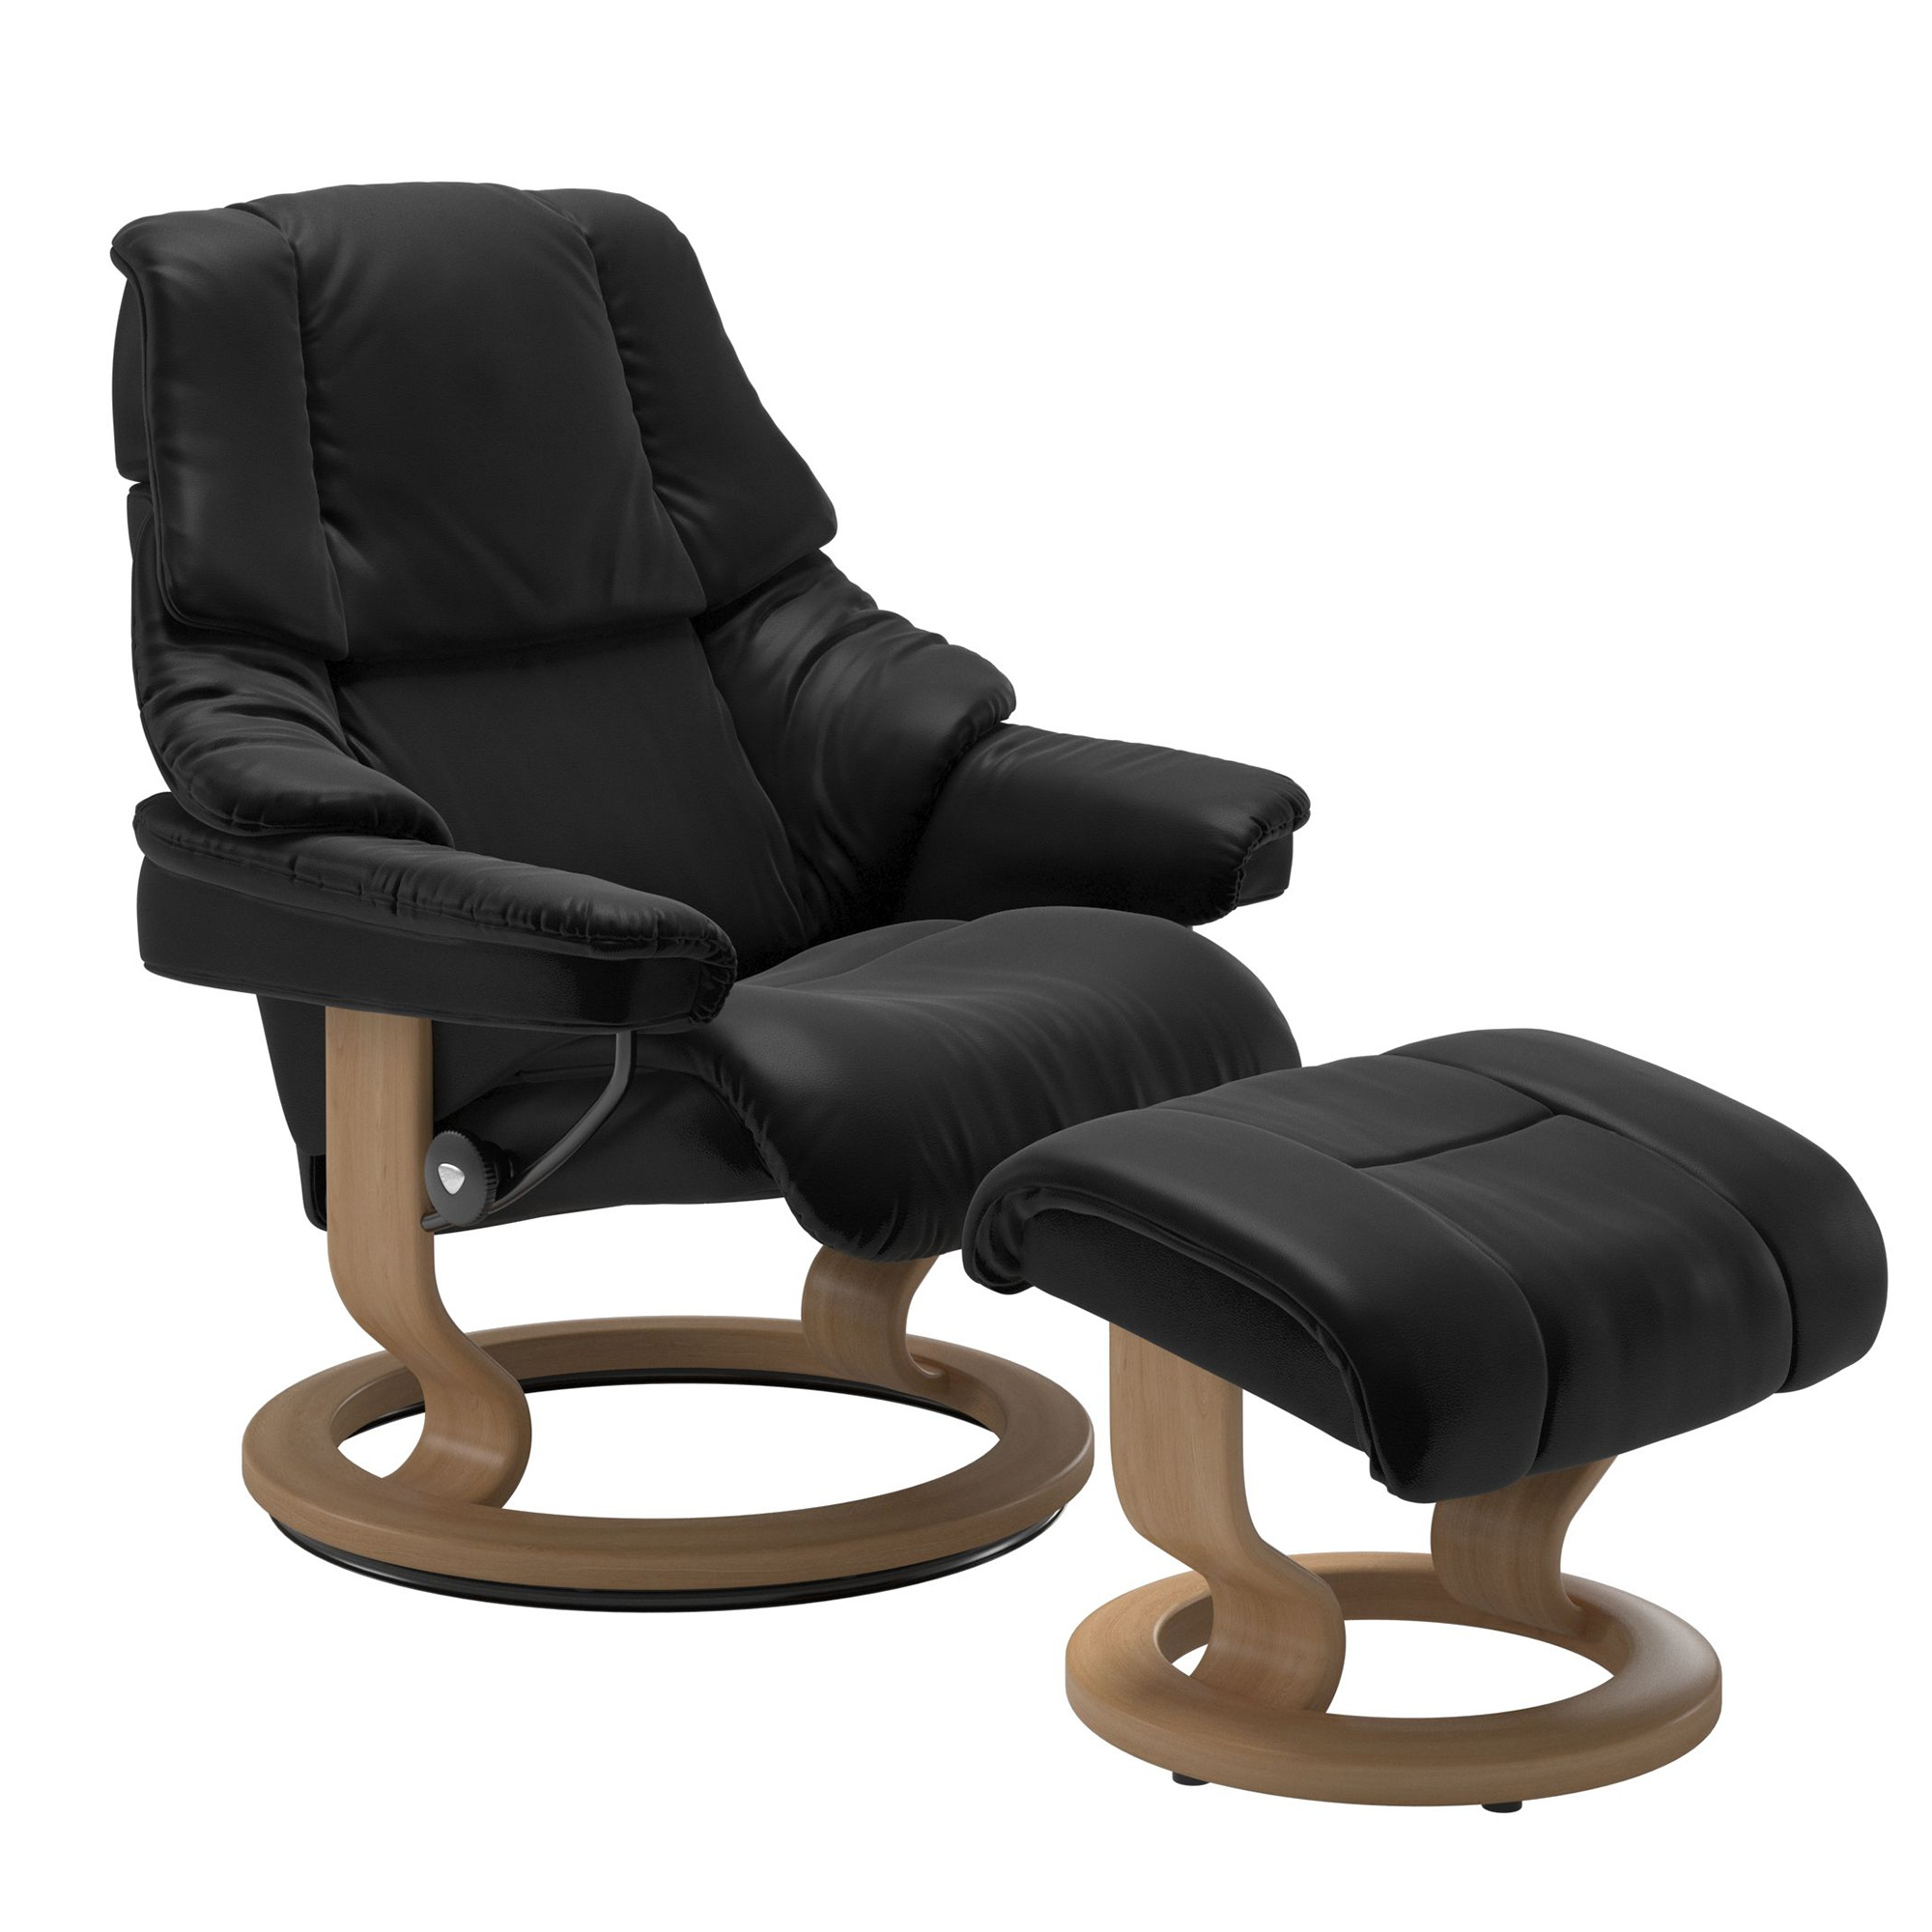 stressless chairs reviews uk teal parsons chair vegas and stool cookes furniture